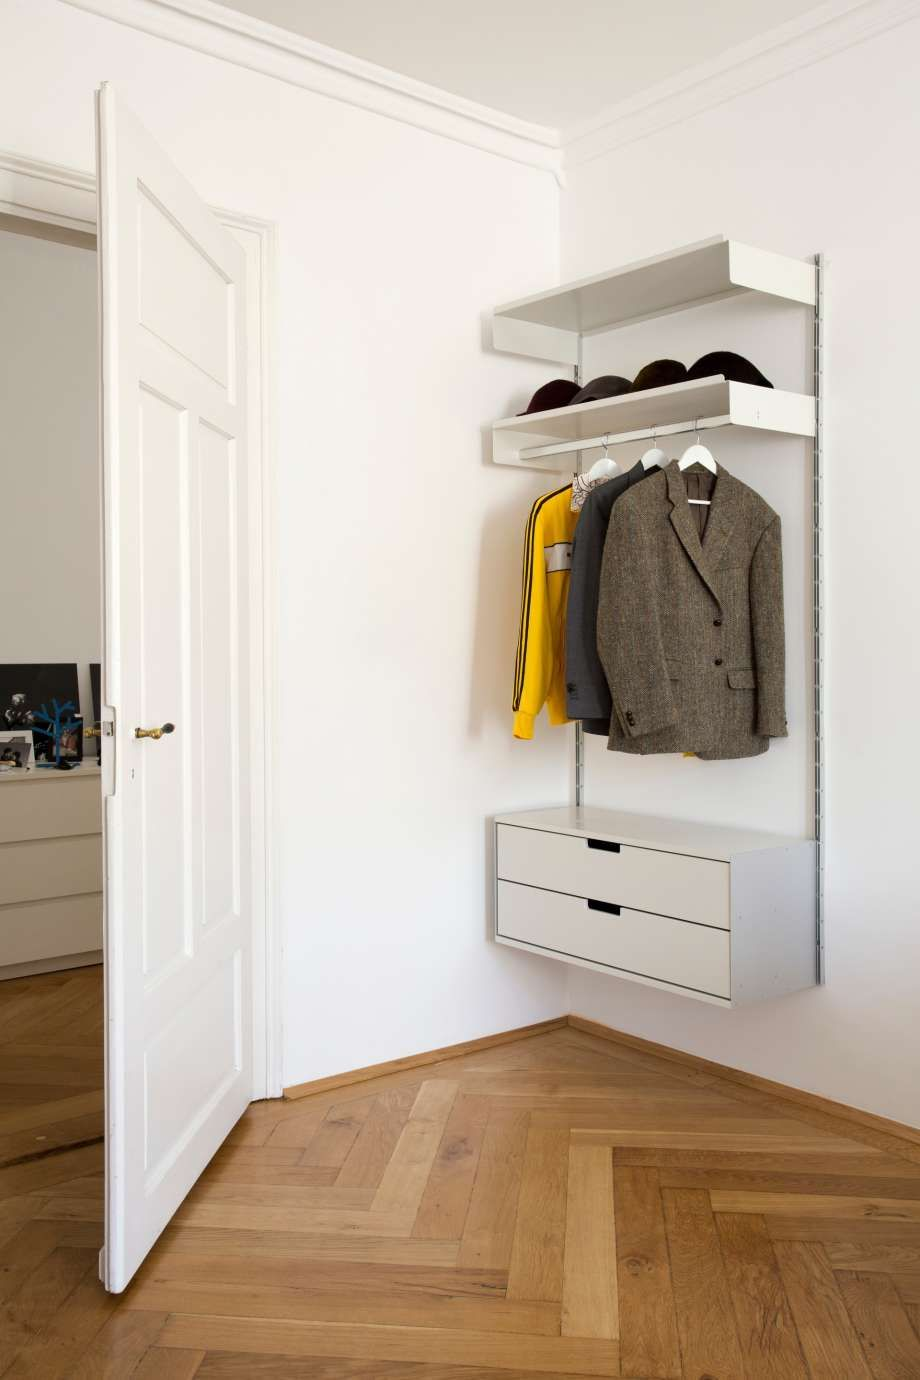 Make Use Of Awkward Areas Shelf With Hanging Rail For Hats And